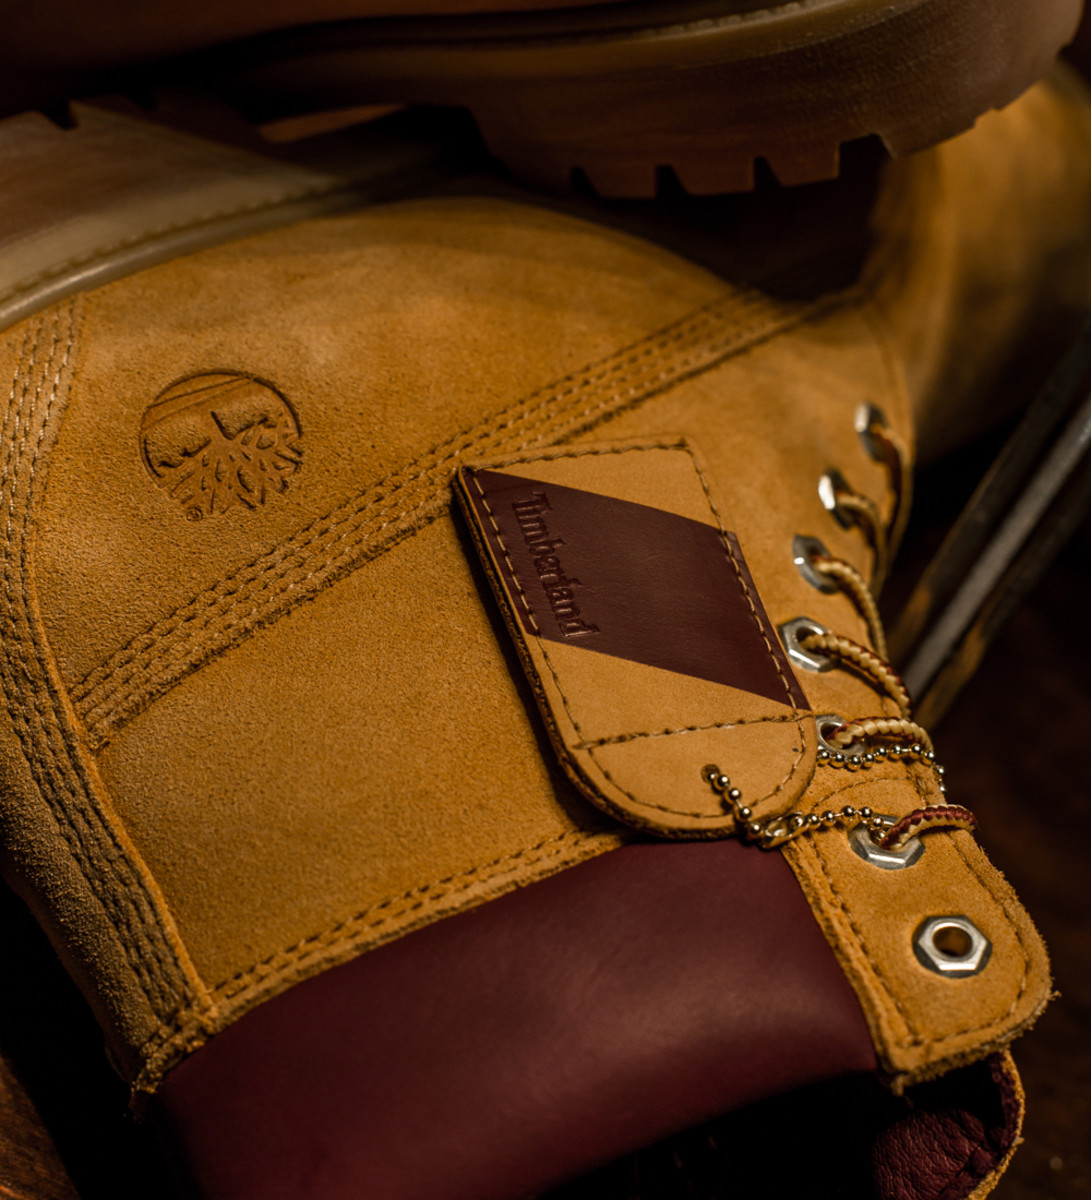 timberland-6-inch-boot-wheat-suede-dtlr-exclusive-04.jpg